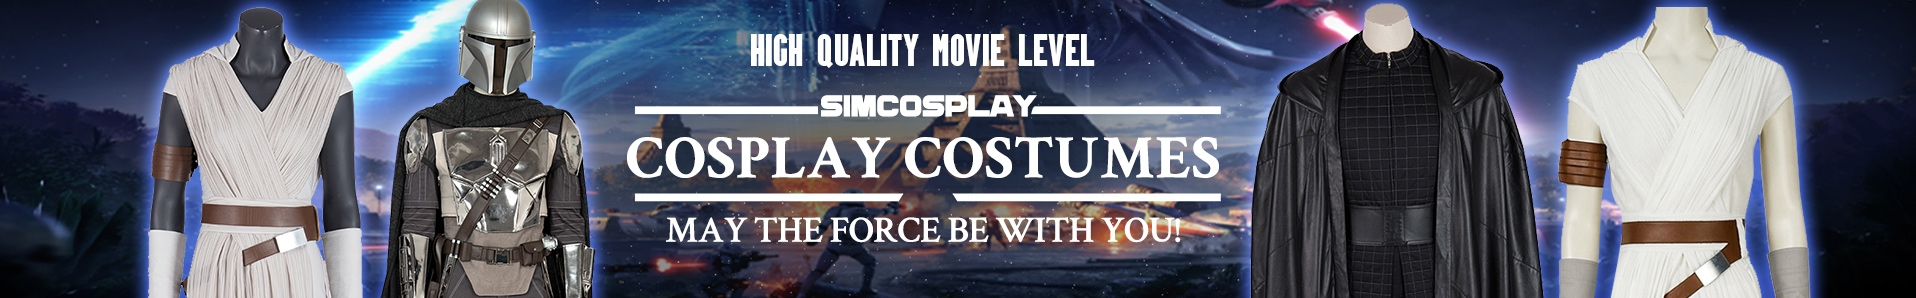 star wars the rise of skywalker cosplay costumes